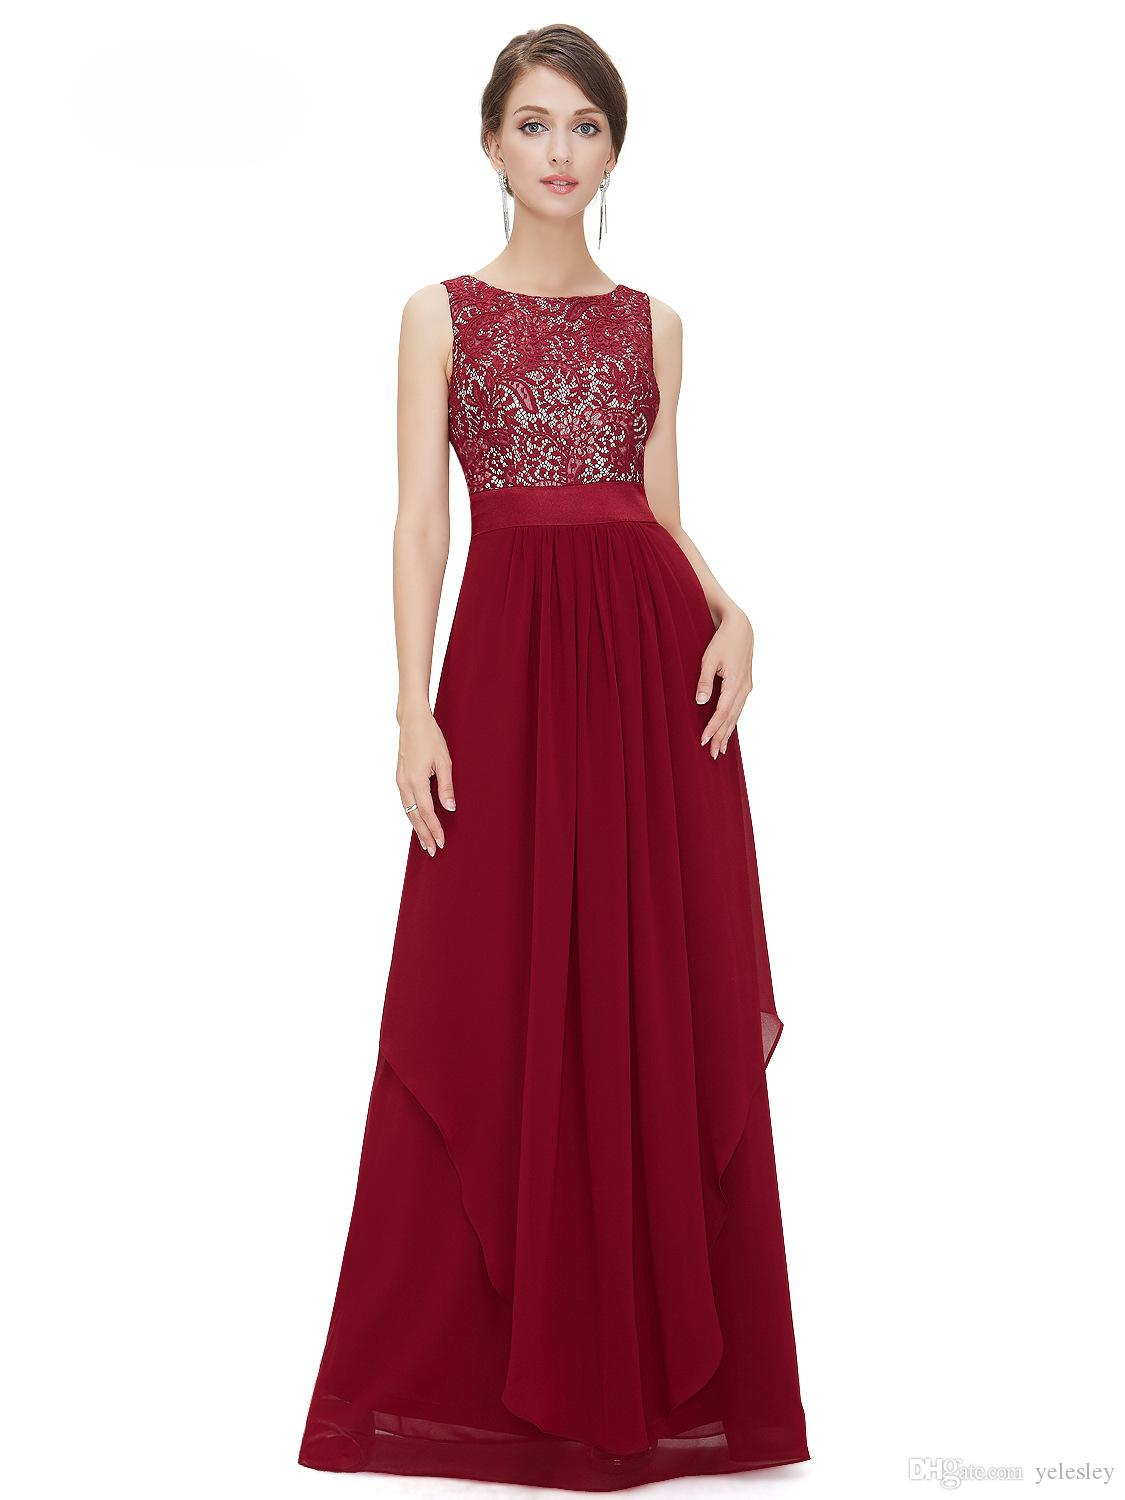 Lace Evening Gowns Sleeveless Low Cut Ruched Plus Size Crystals Mermaid  Dresses Evening Wear Chiffon Long Beaded Celebrity Formal Dress Womens Sun  ...